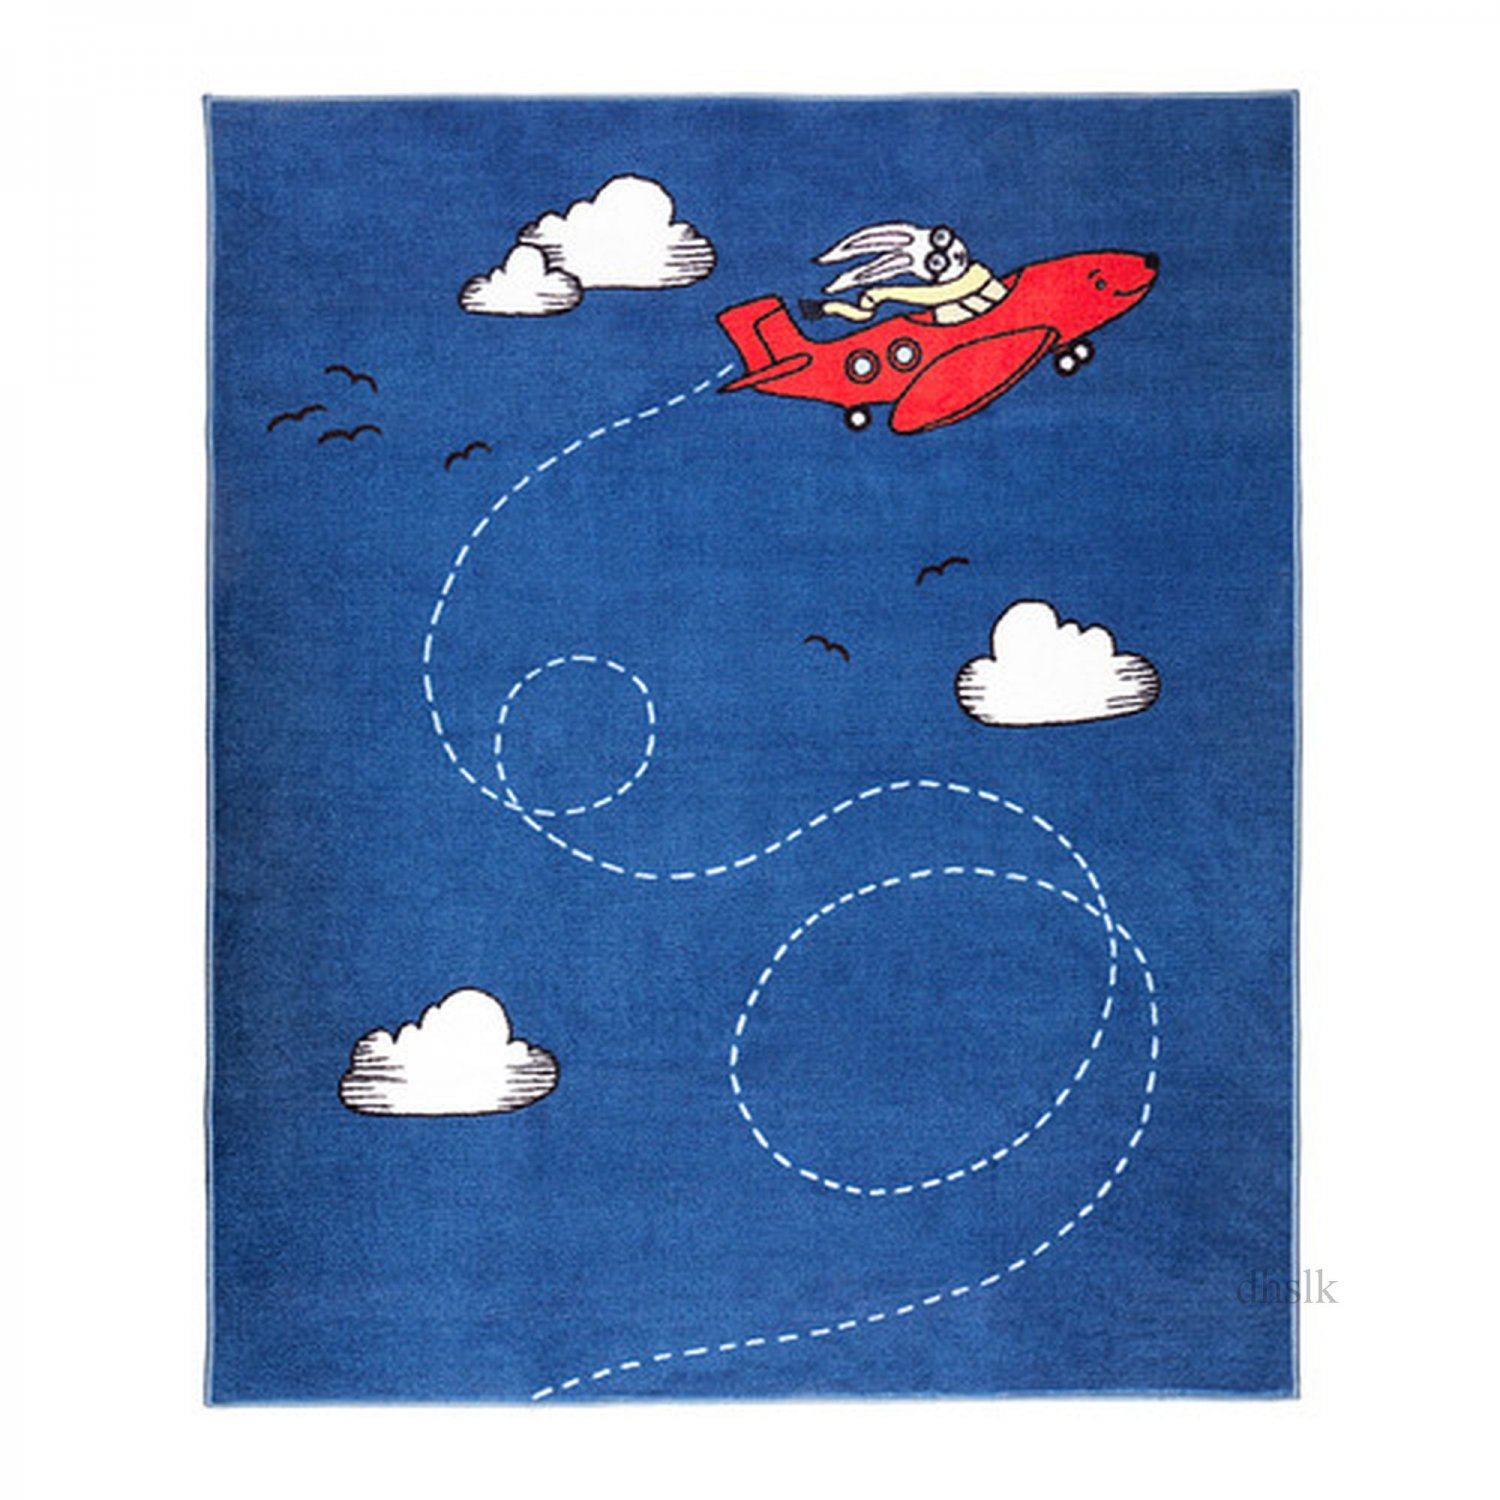 Ikea Kitchen Rugs Canada: IKEA FLYGTUR Area Throw RUG Mat BUE Kids Decor AIRPLANE